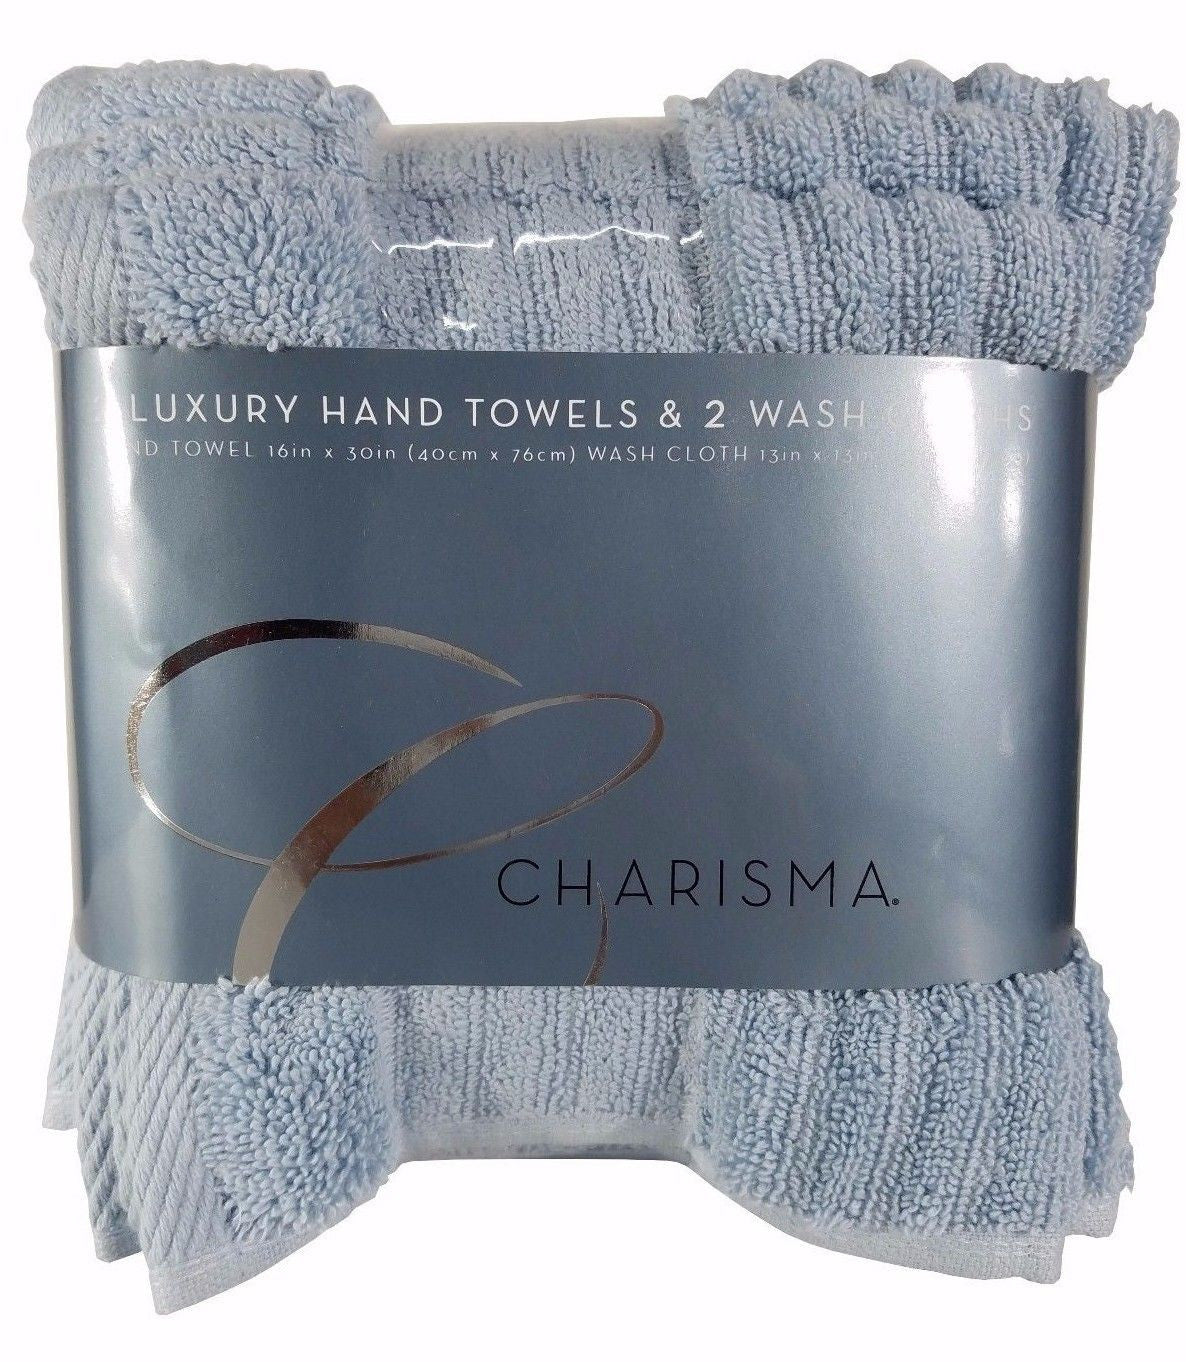 Charisma 2 Luxury Hand Towels & 2 Wash Cloths 100% Hygro Cotton 4pk - Bay Blue